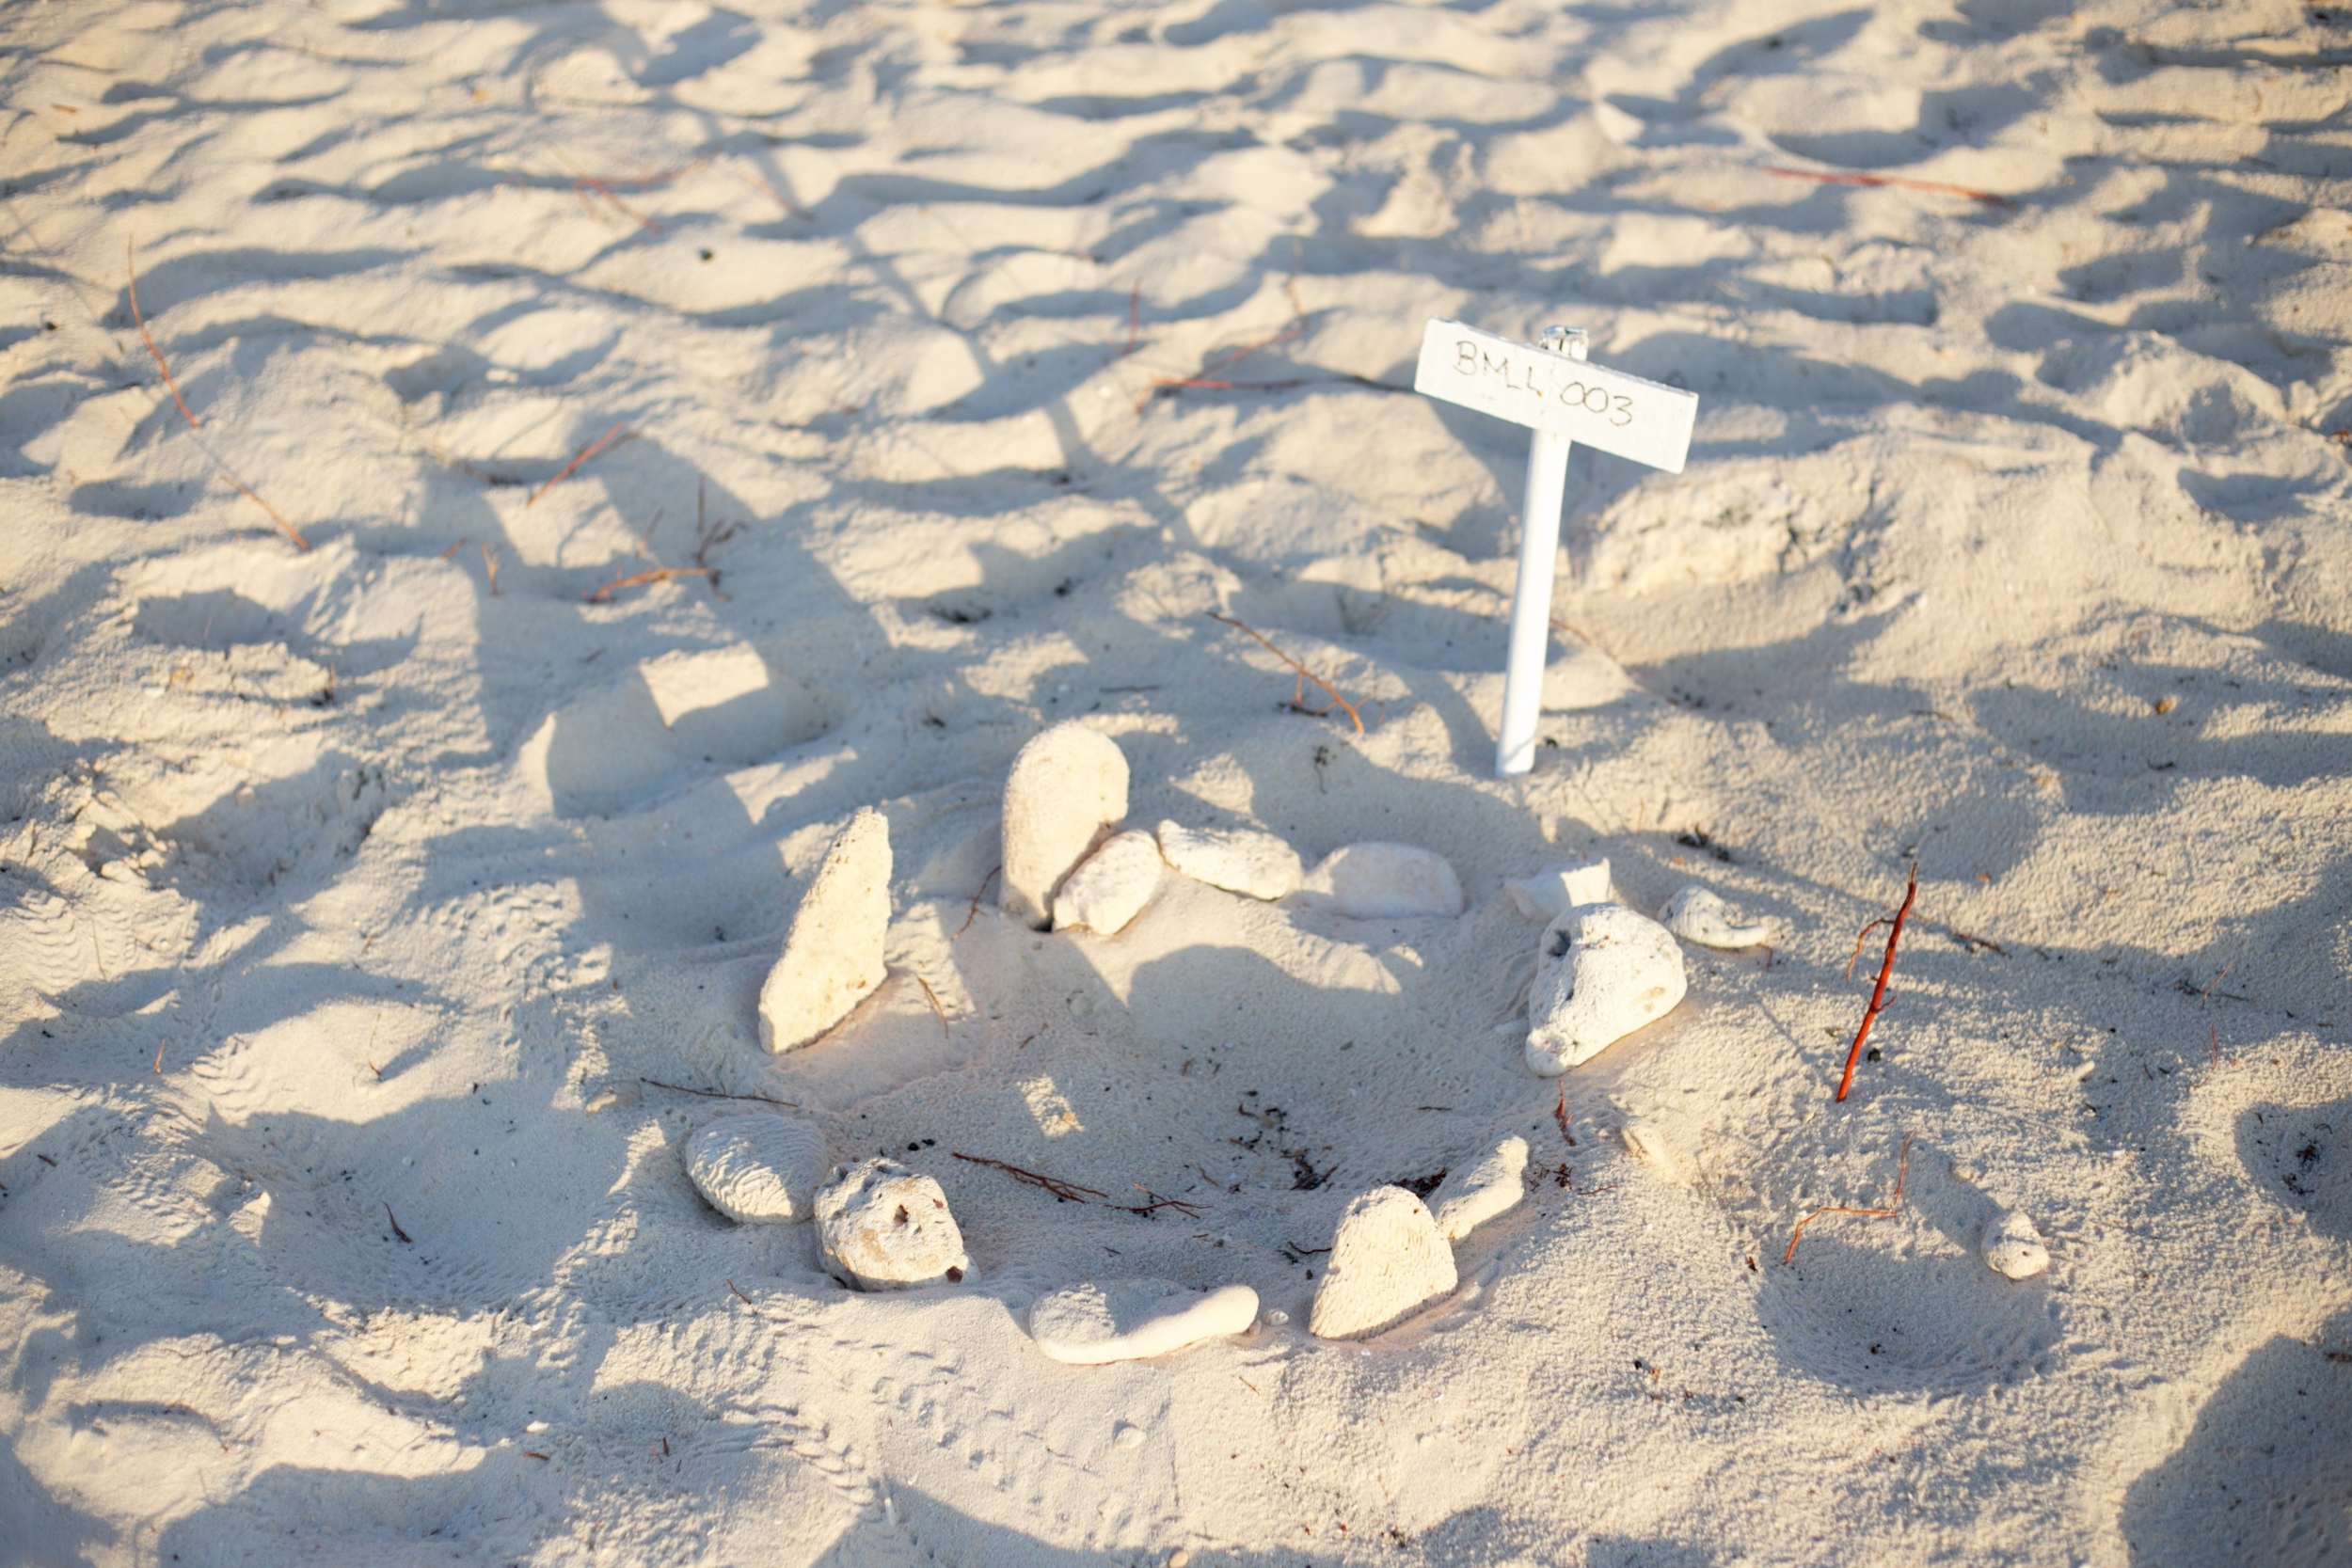 A marked turtle's nest in Half Moon Bay.